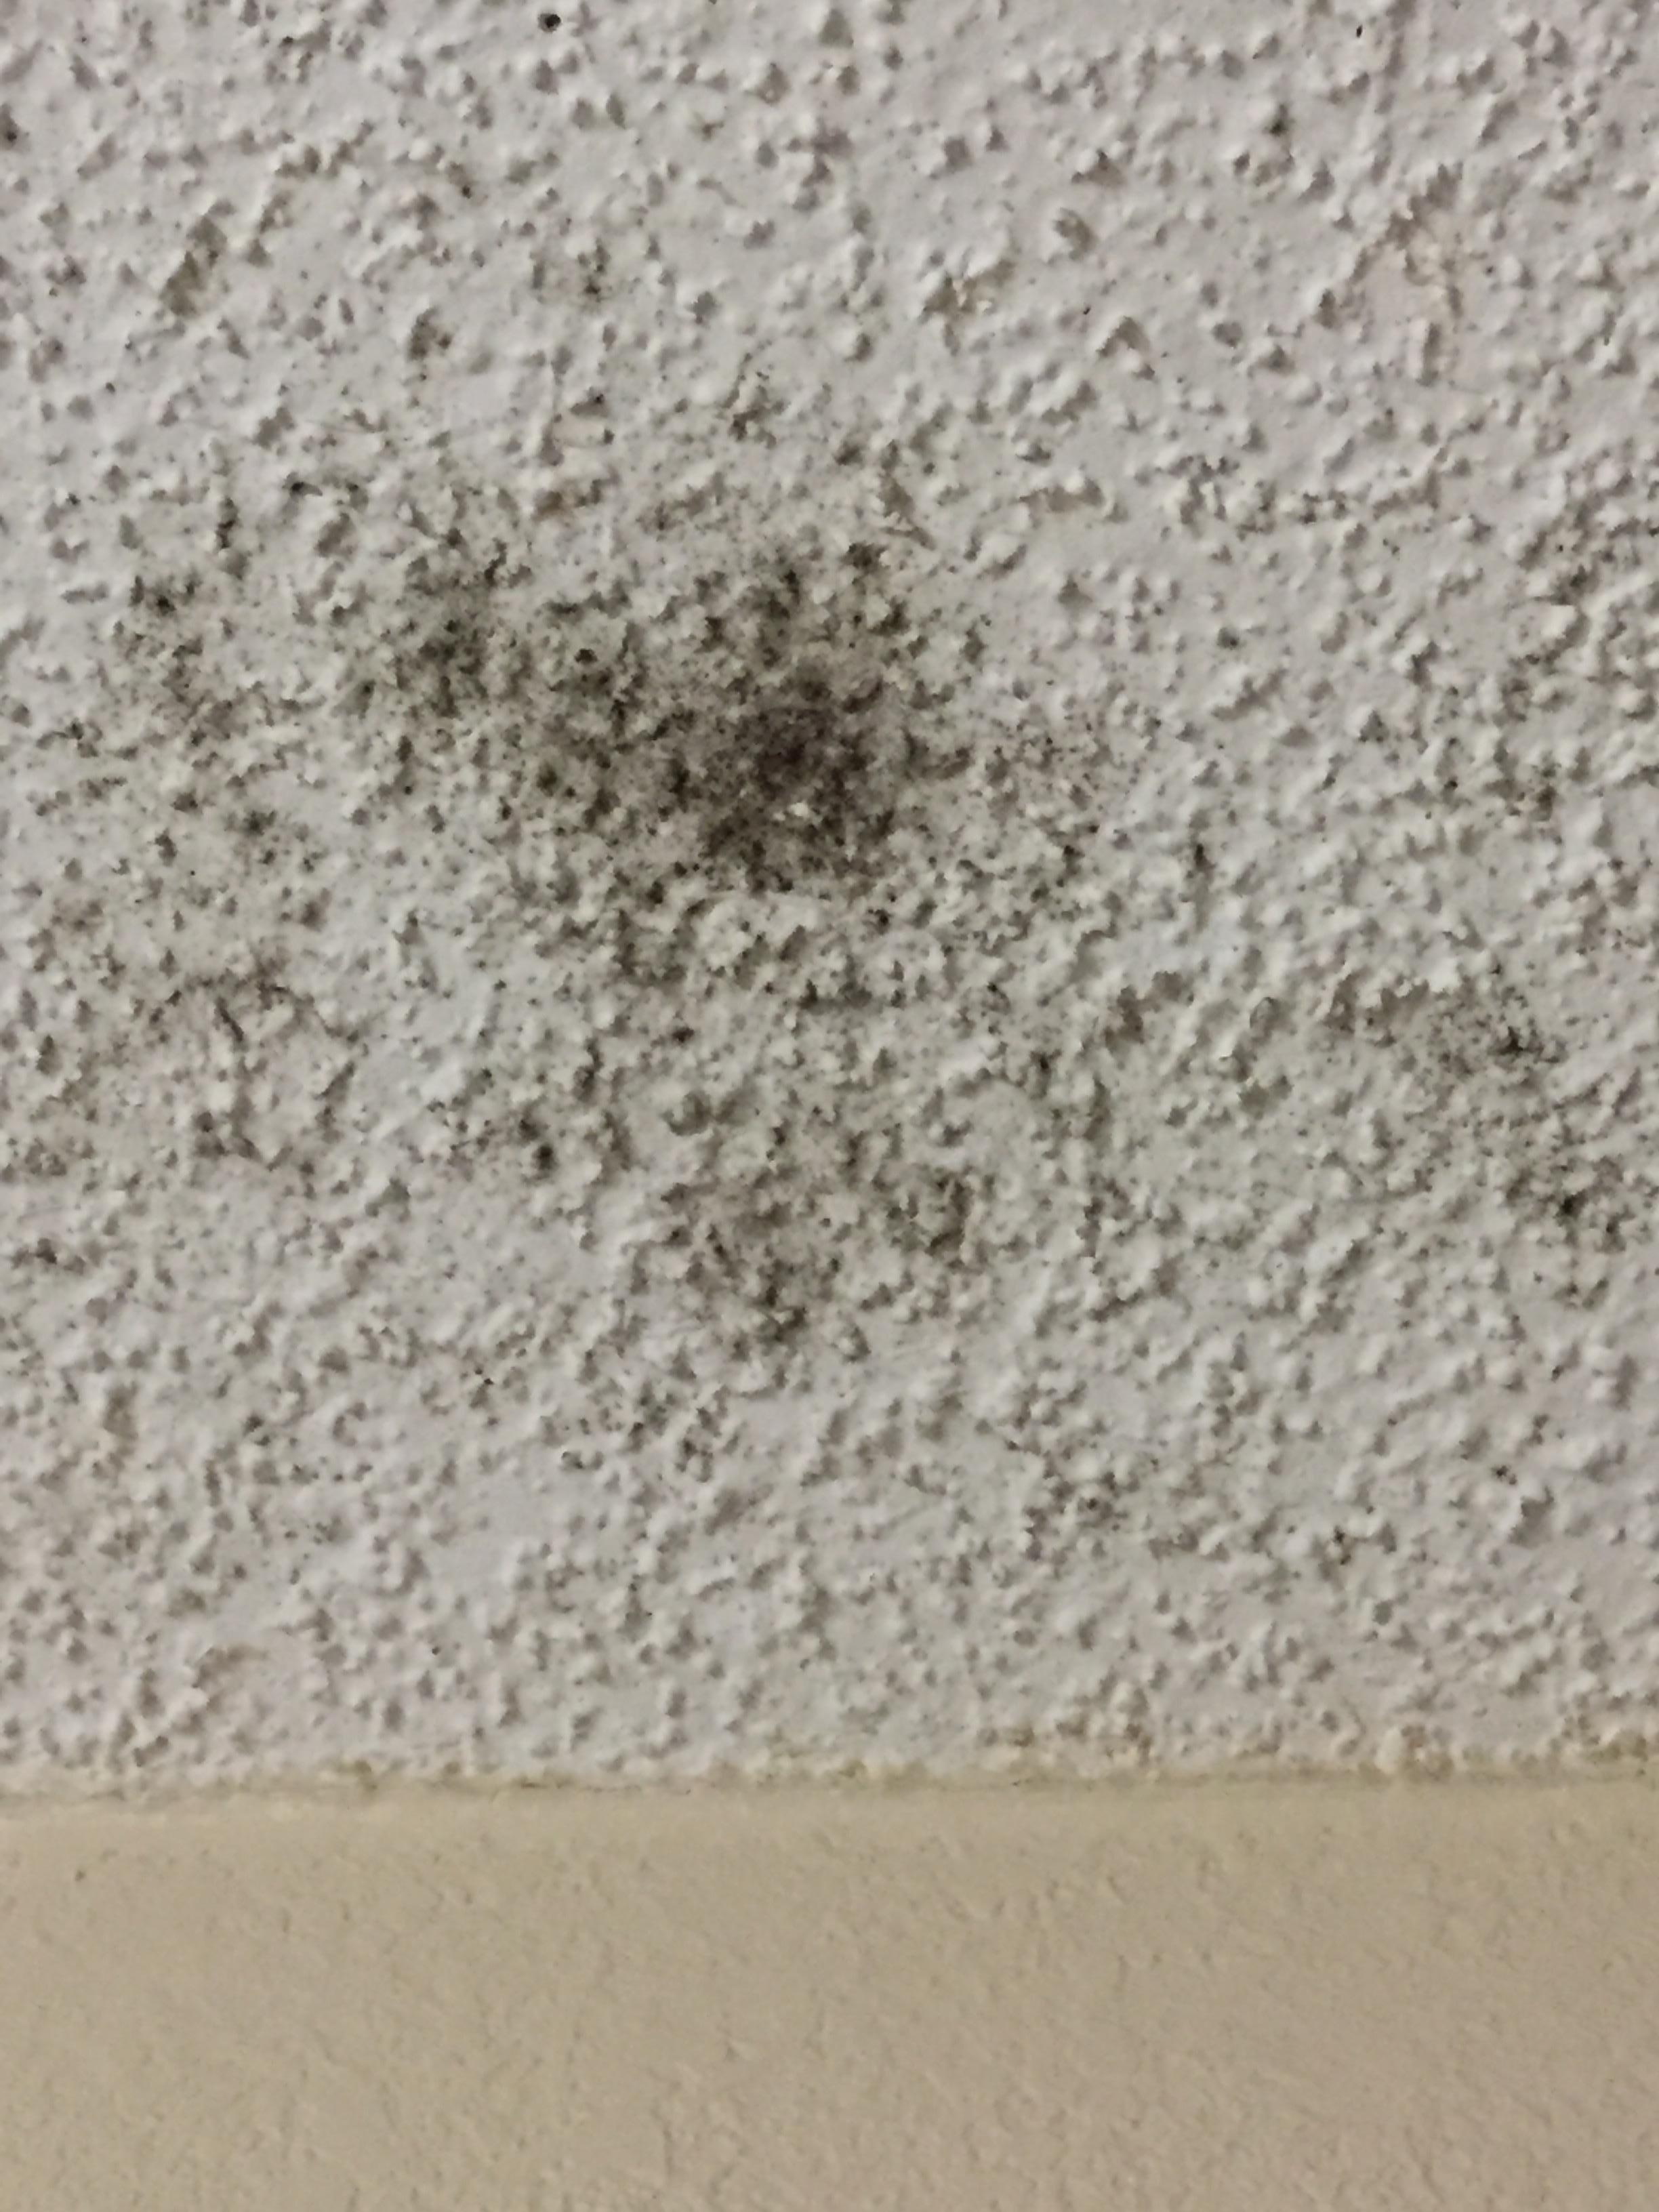 Mold or mildew on ceiling